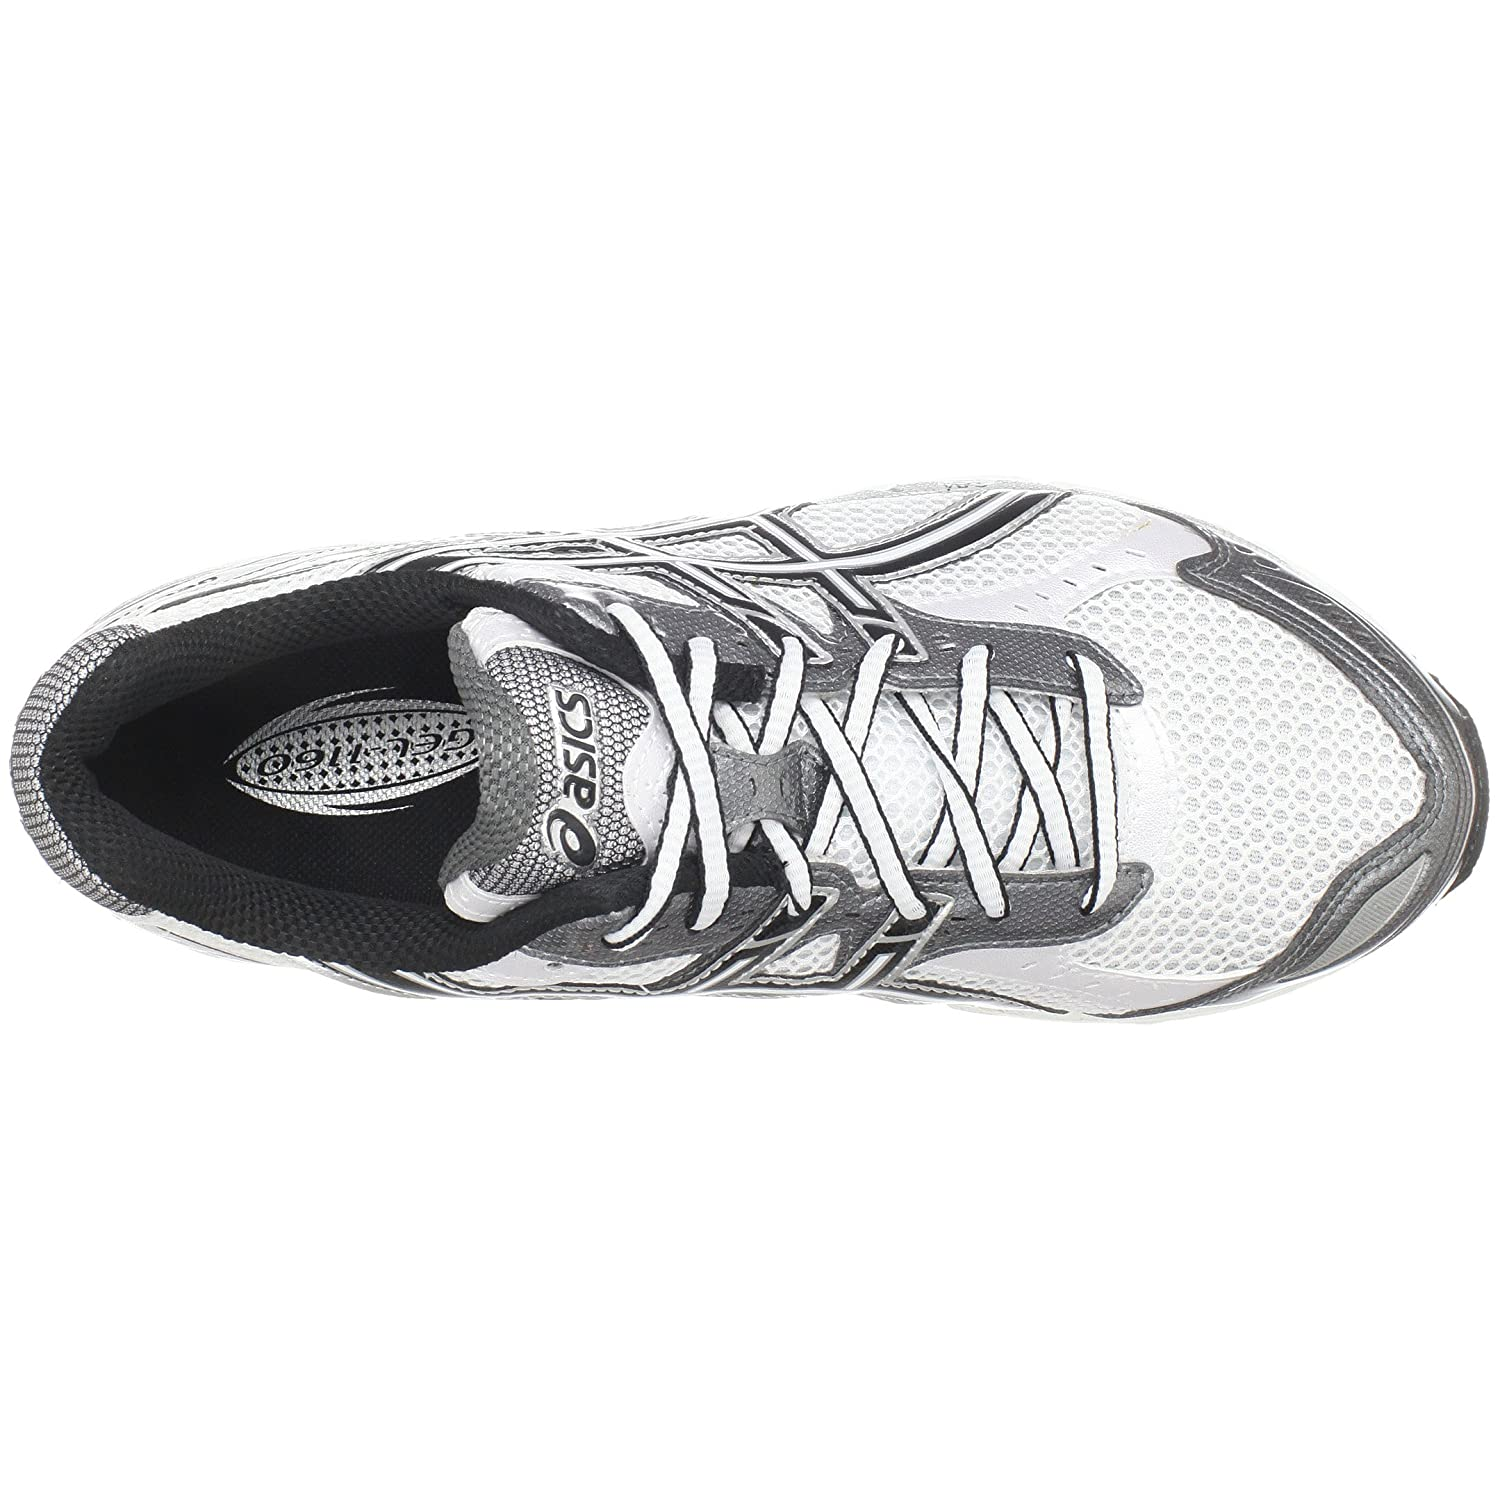 ASICS GEL 1160 Boys Running Shoes Supports feet all